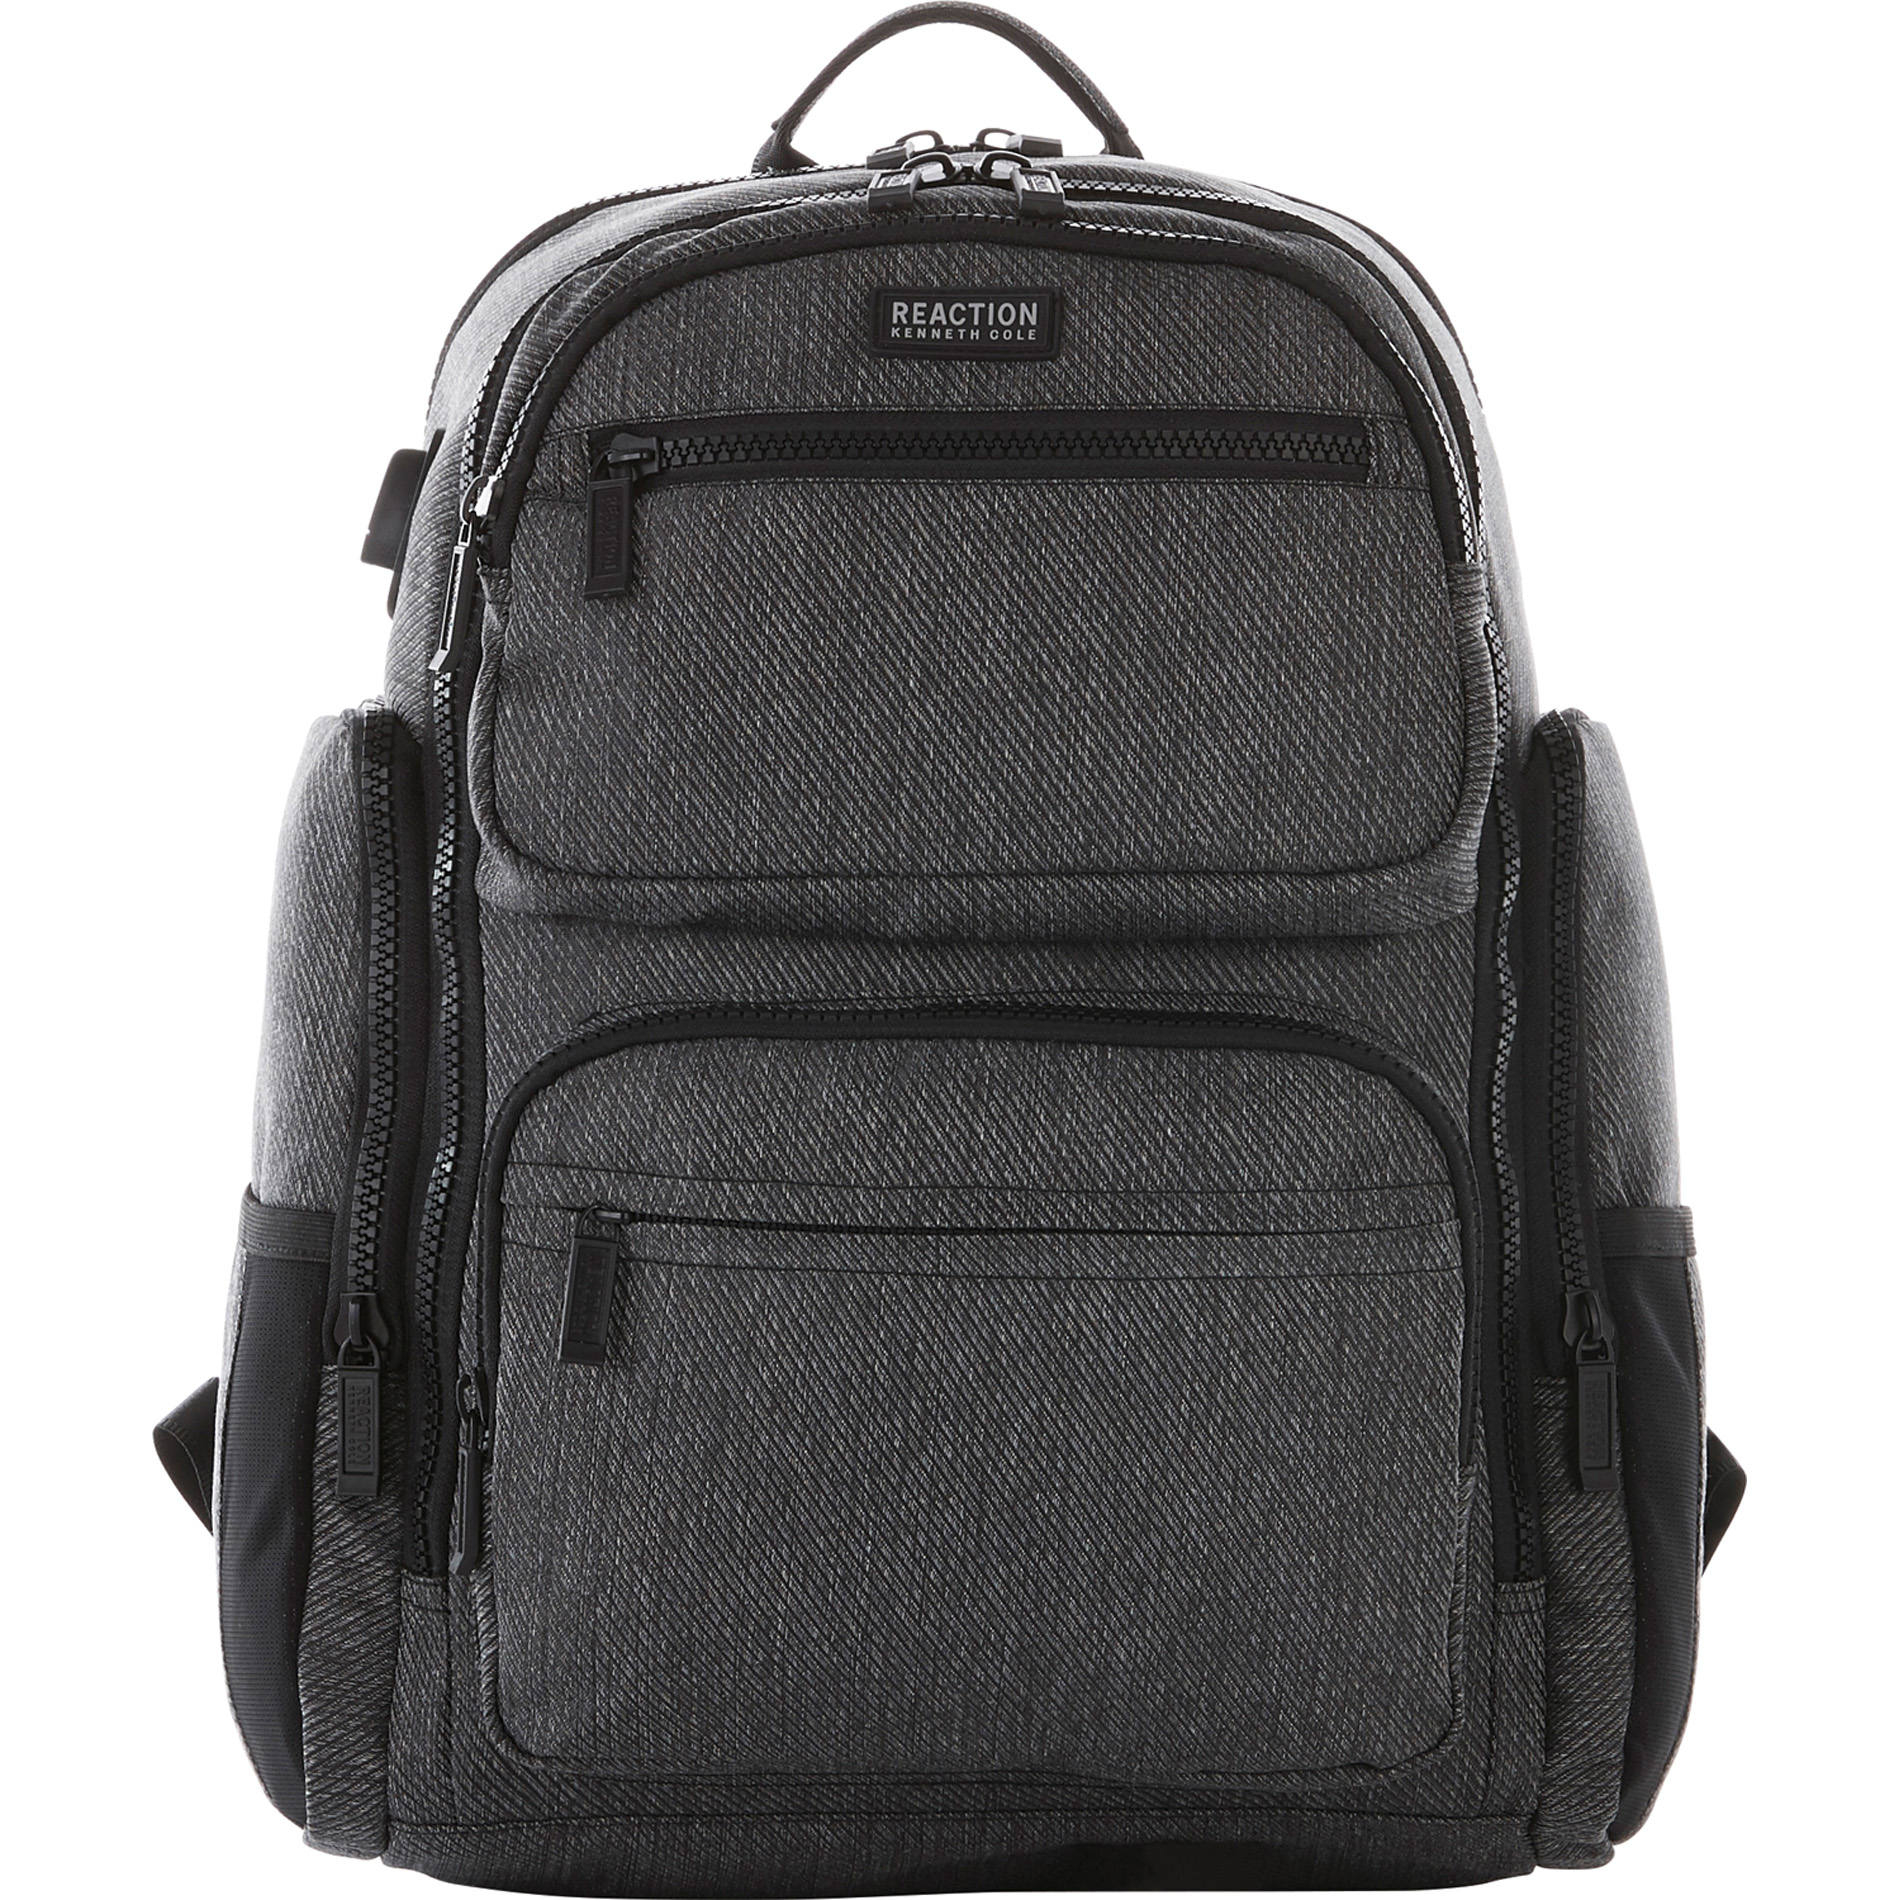 Kenneth Cole 9950-86 - Double Pocket 15 Computer Backpack